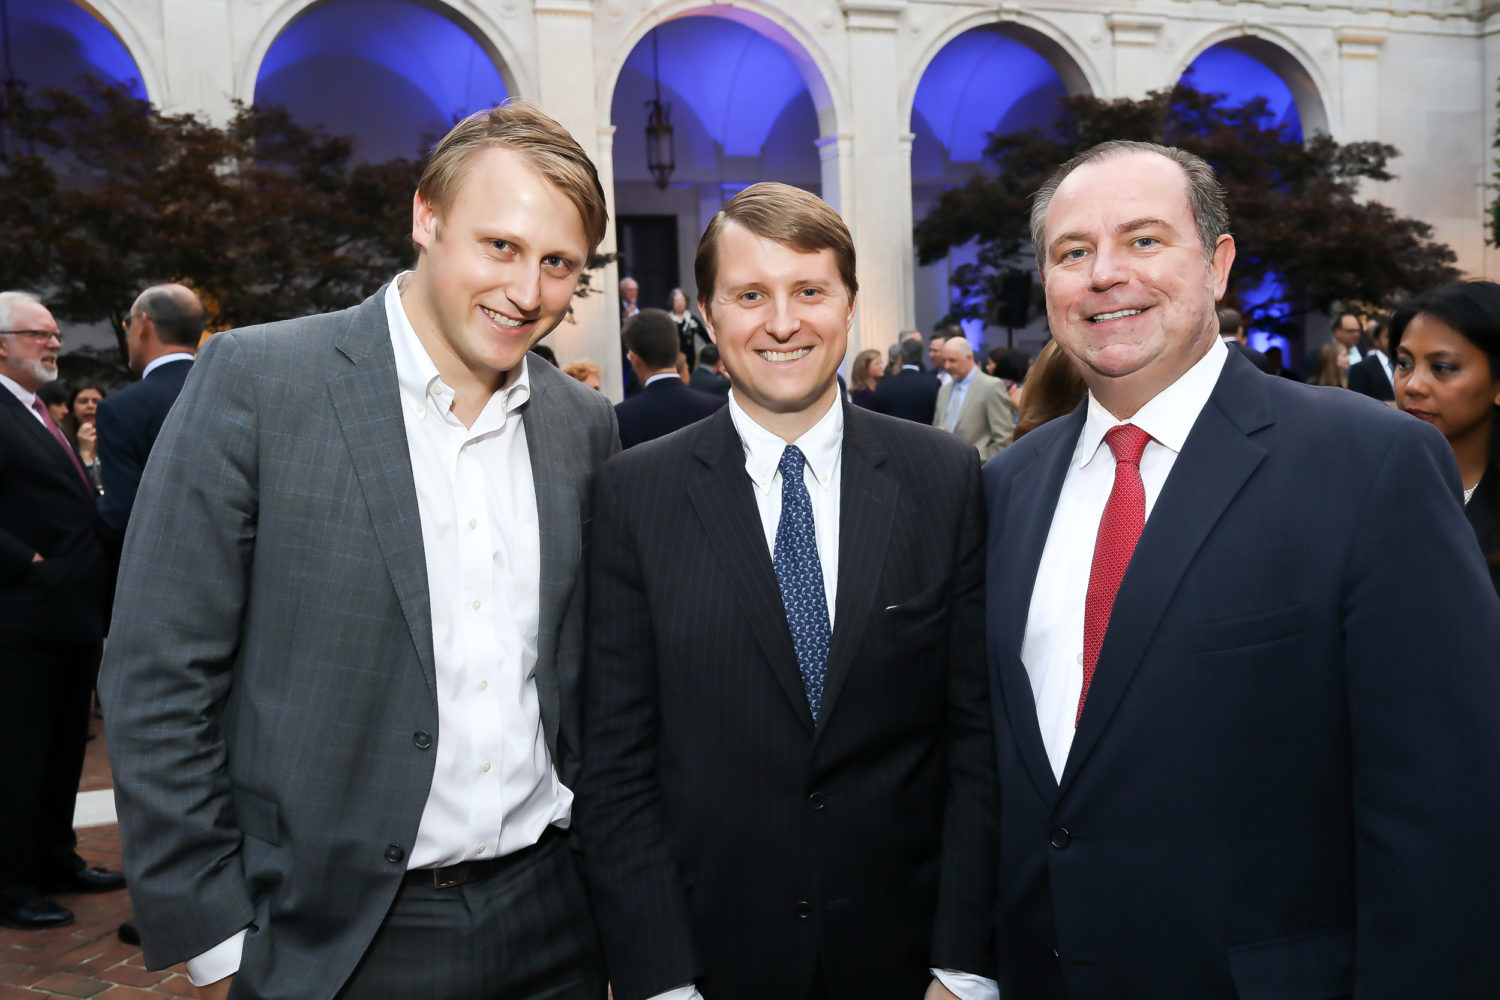 Daniel Lippman of POLITICO, Christopher Nixon Cox (lawyer and grandson of President Richard Nixon), and Christopher Ruddy, CEO of Newsmax Media.